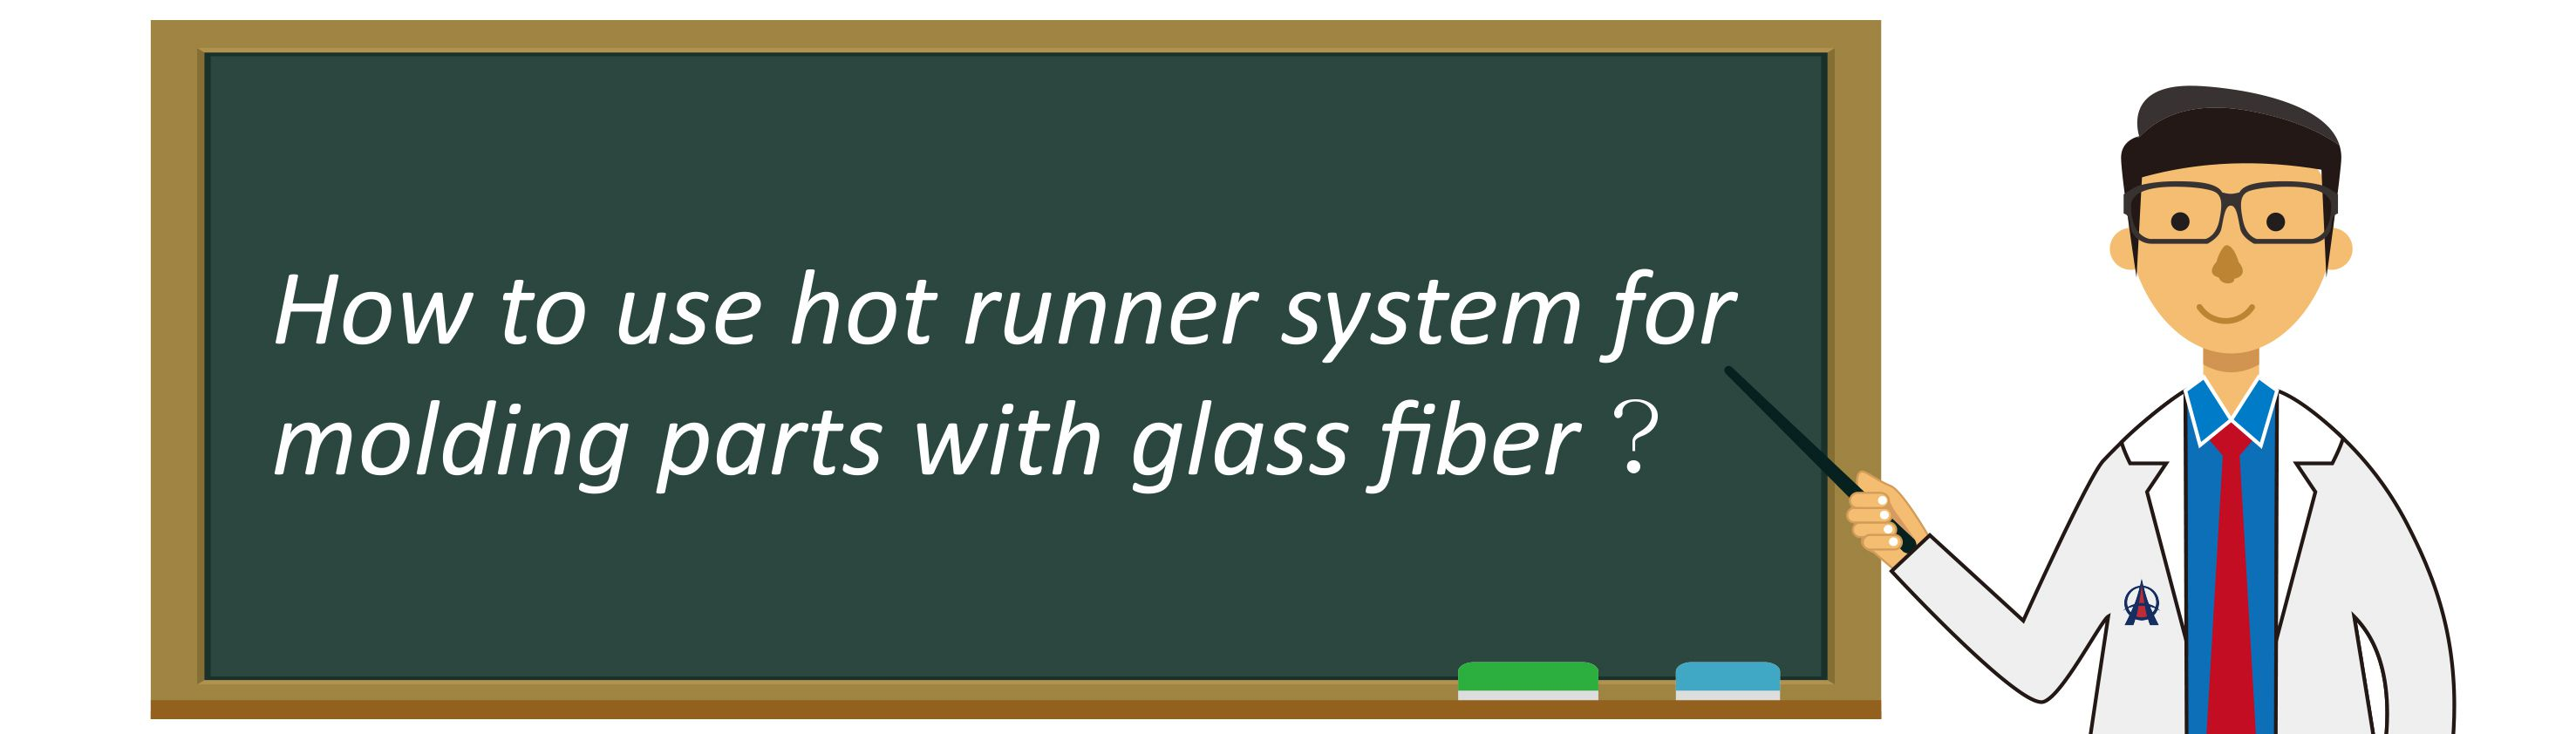 How to use hot runner system for molding parts with glass fiber